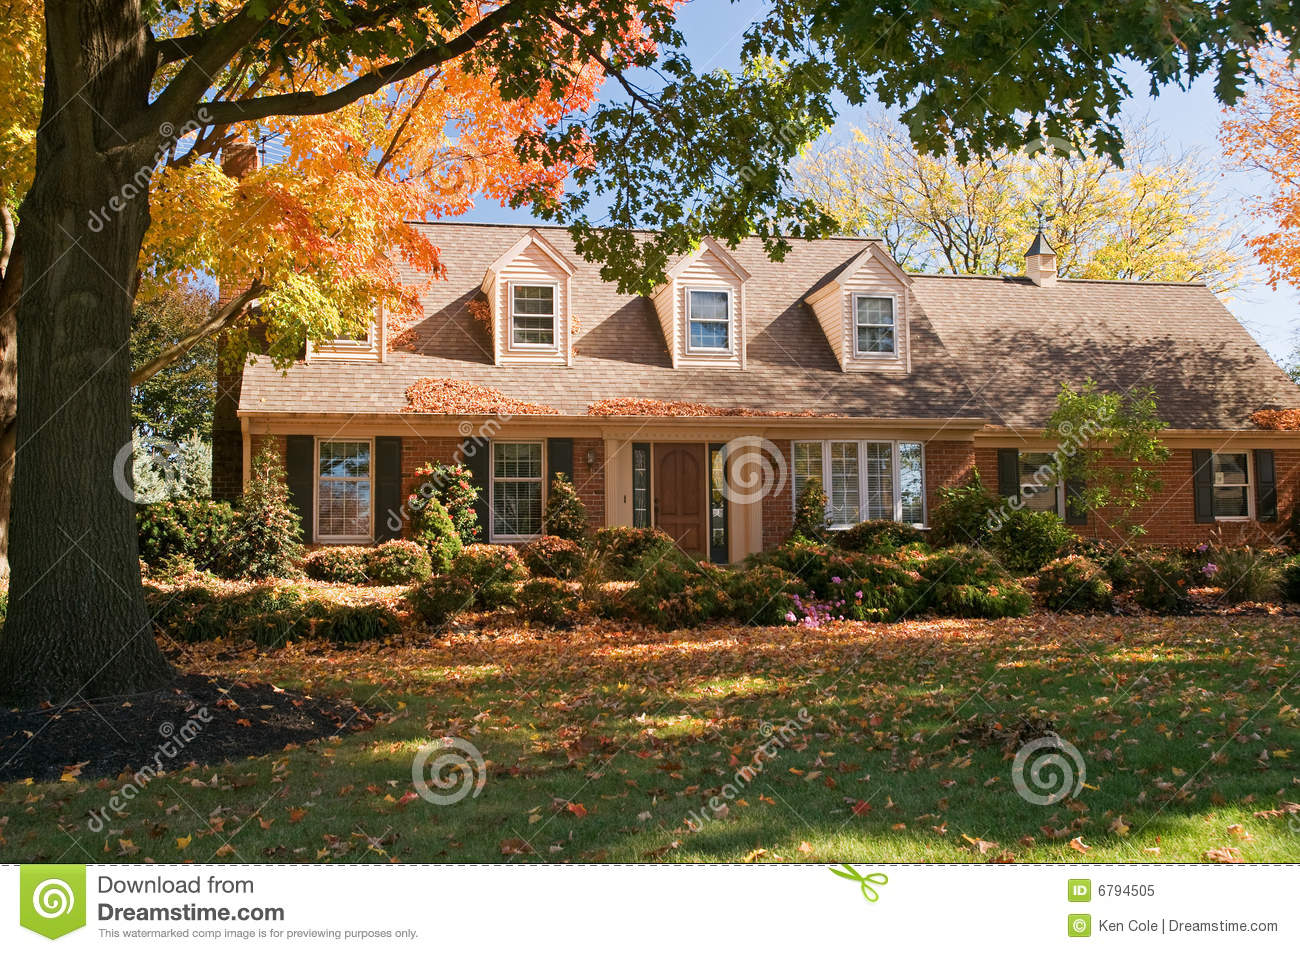 Fall Cape Cod Wallpaper House In Autumn Royalty Free Stock Photo Image 6794505